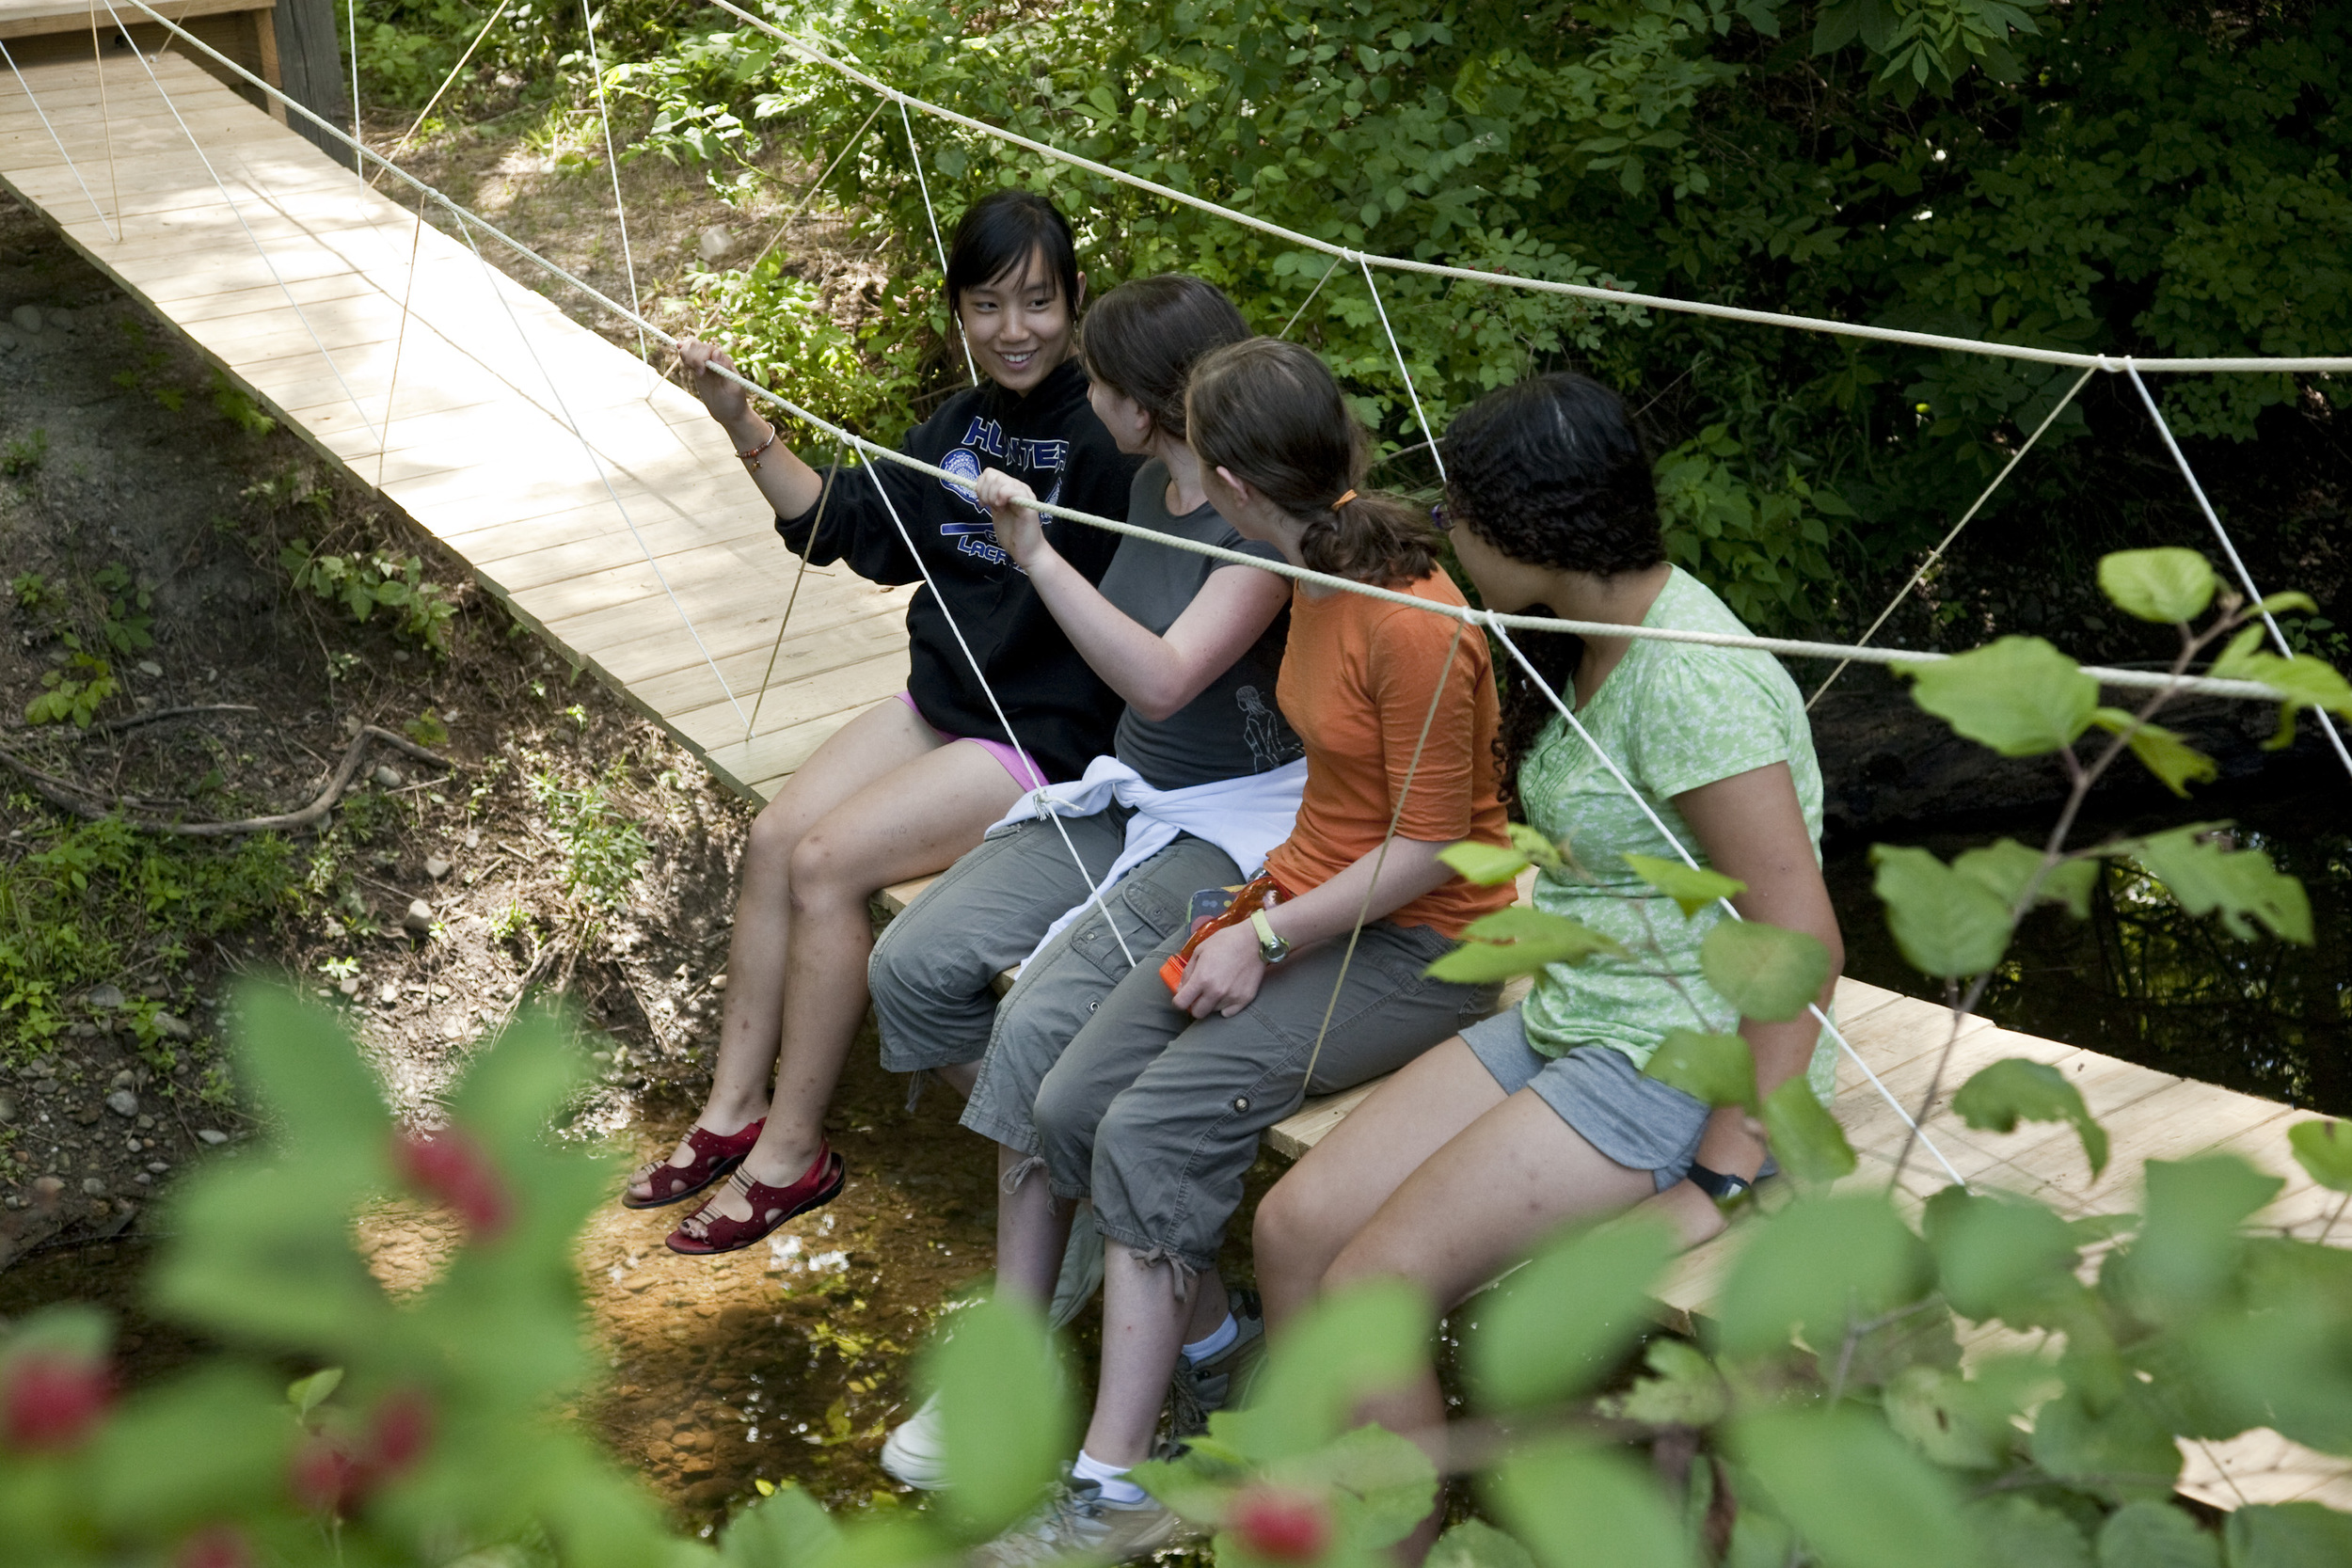 A camper built a suspension bridge that spans a small creek behind the pond.